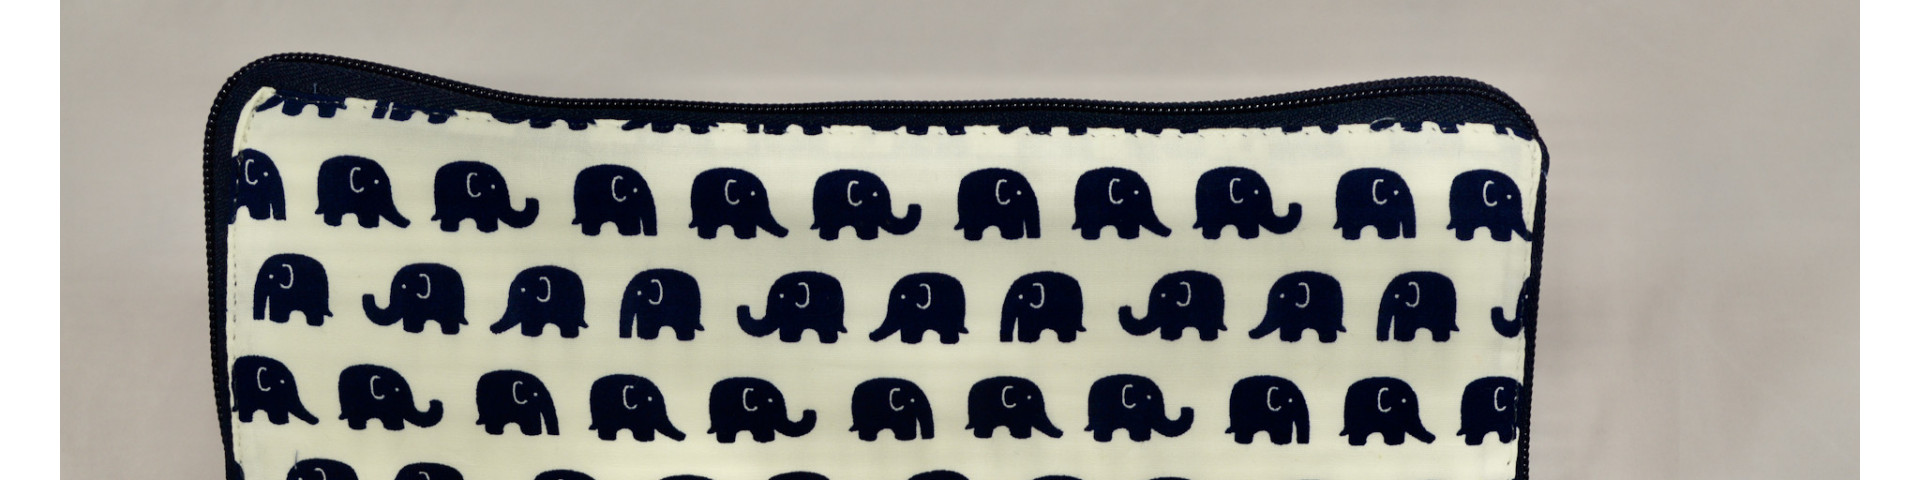 Our elephant bags always come in handy